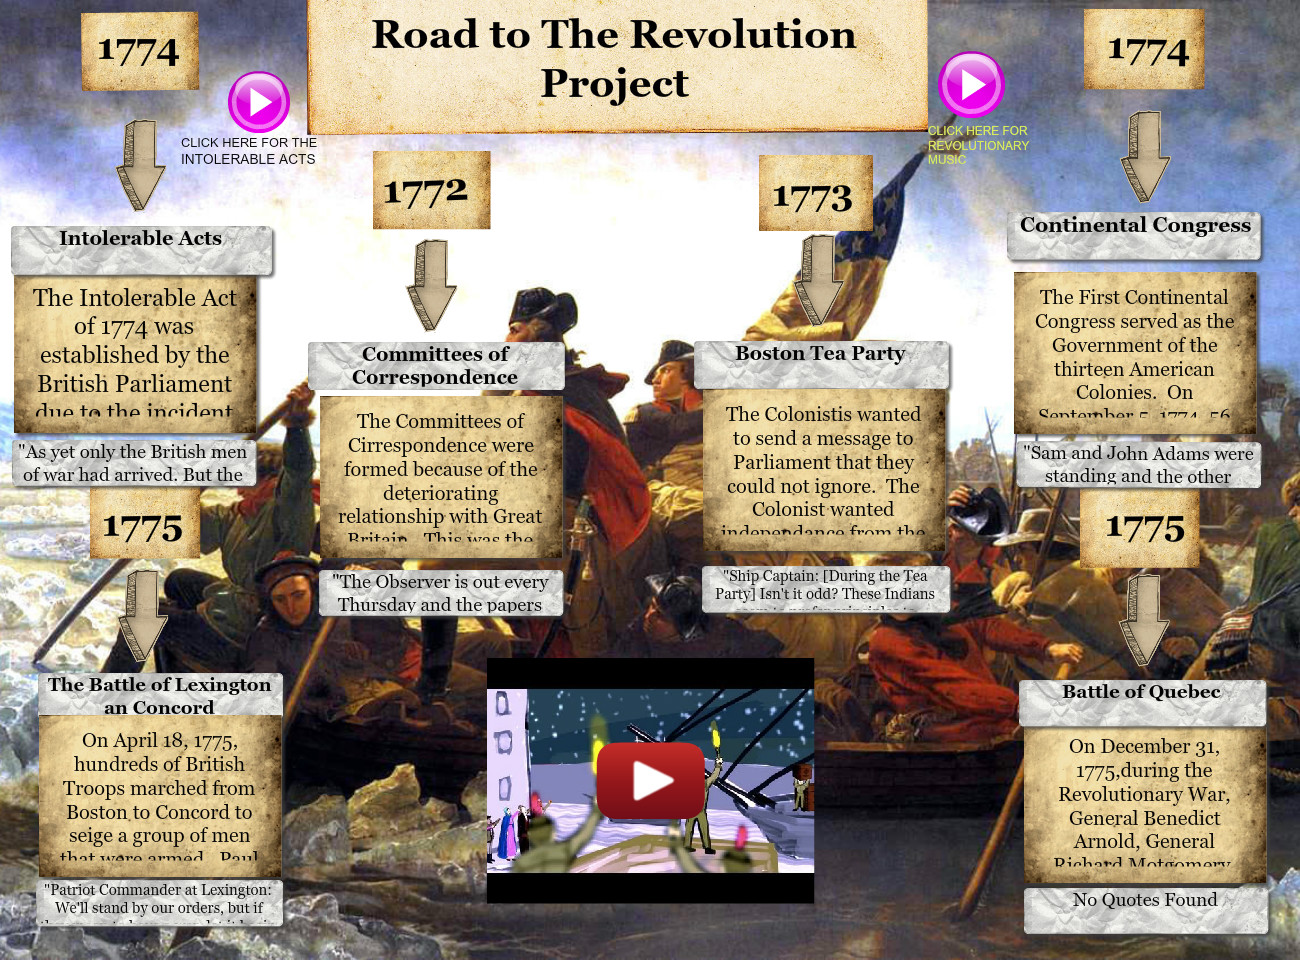 Road to the Revolution Project